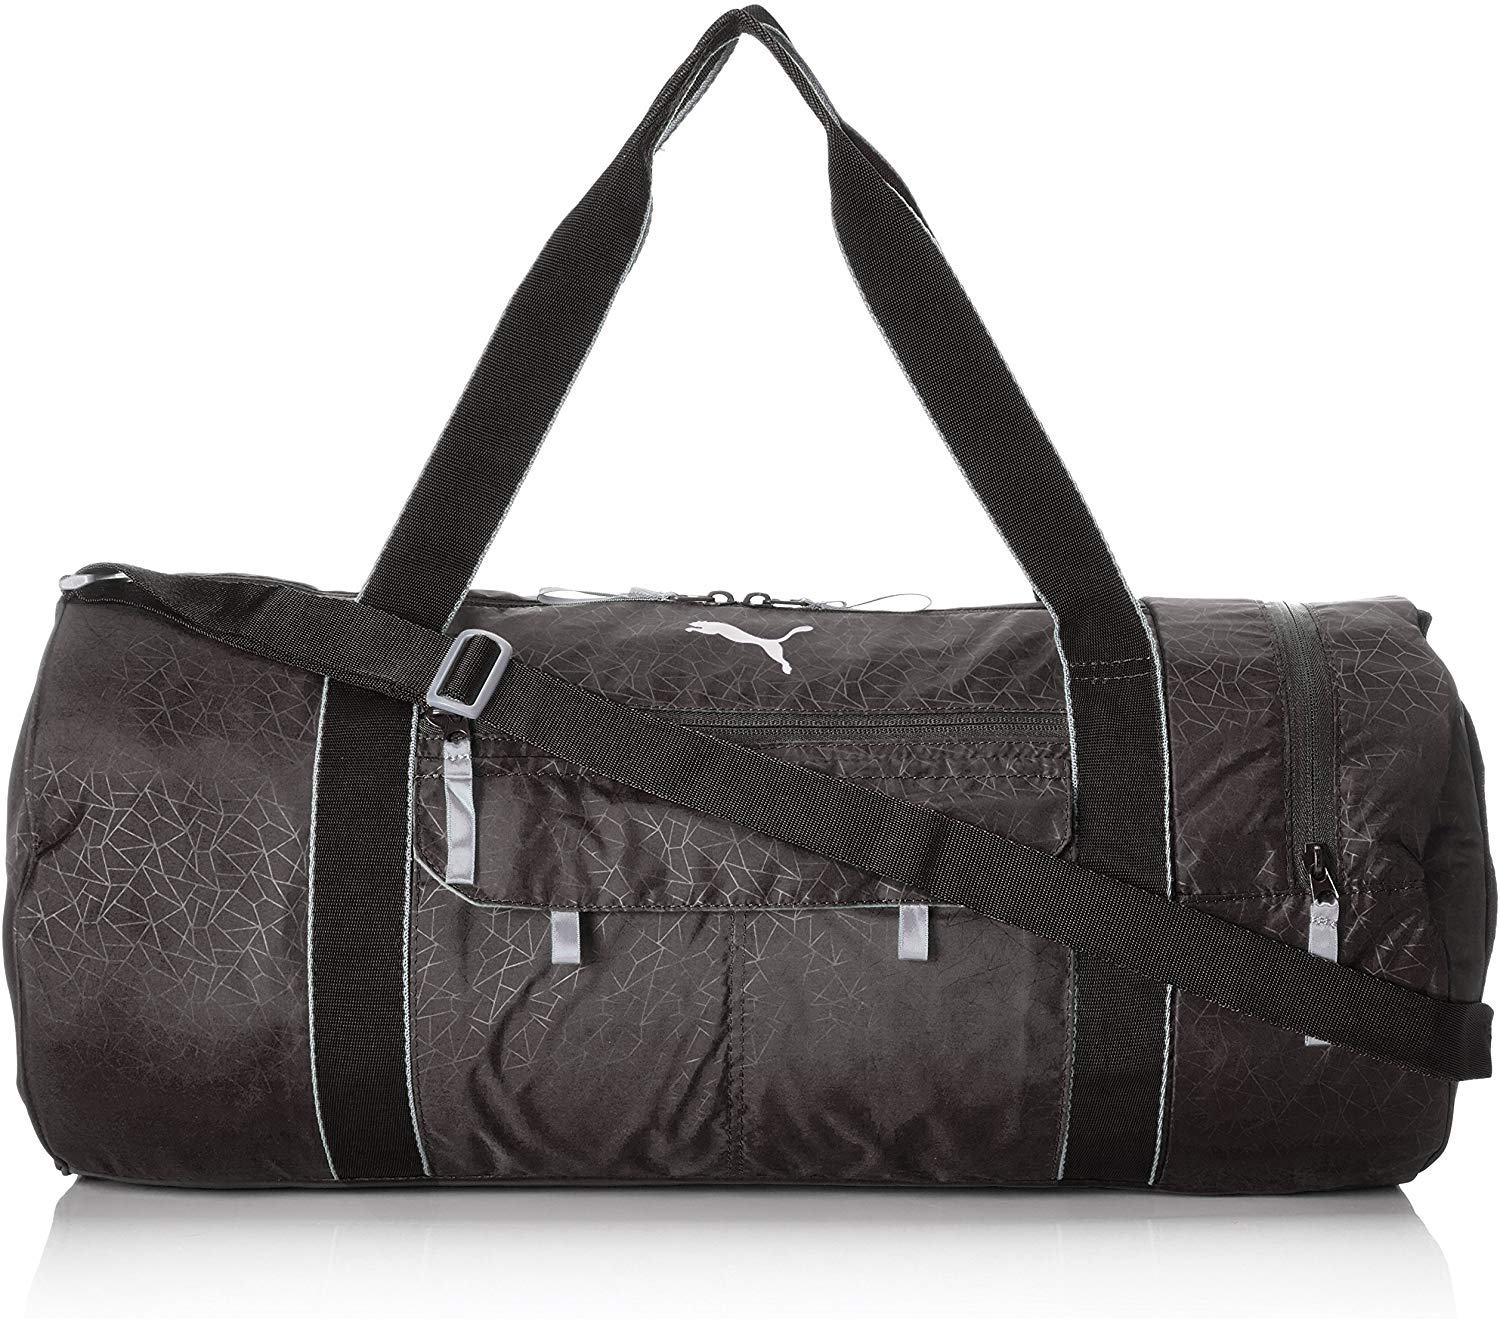 Duffle Tasche Puma amazon